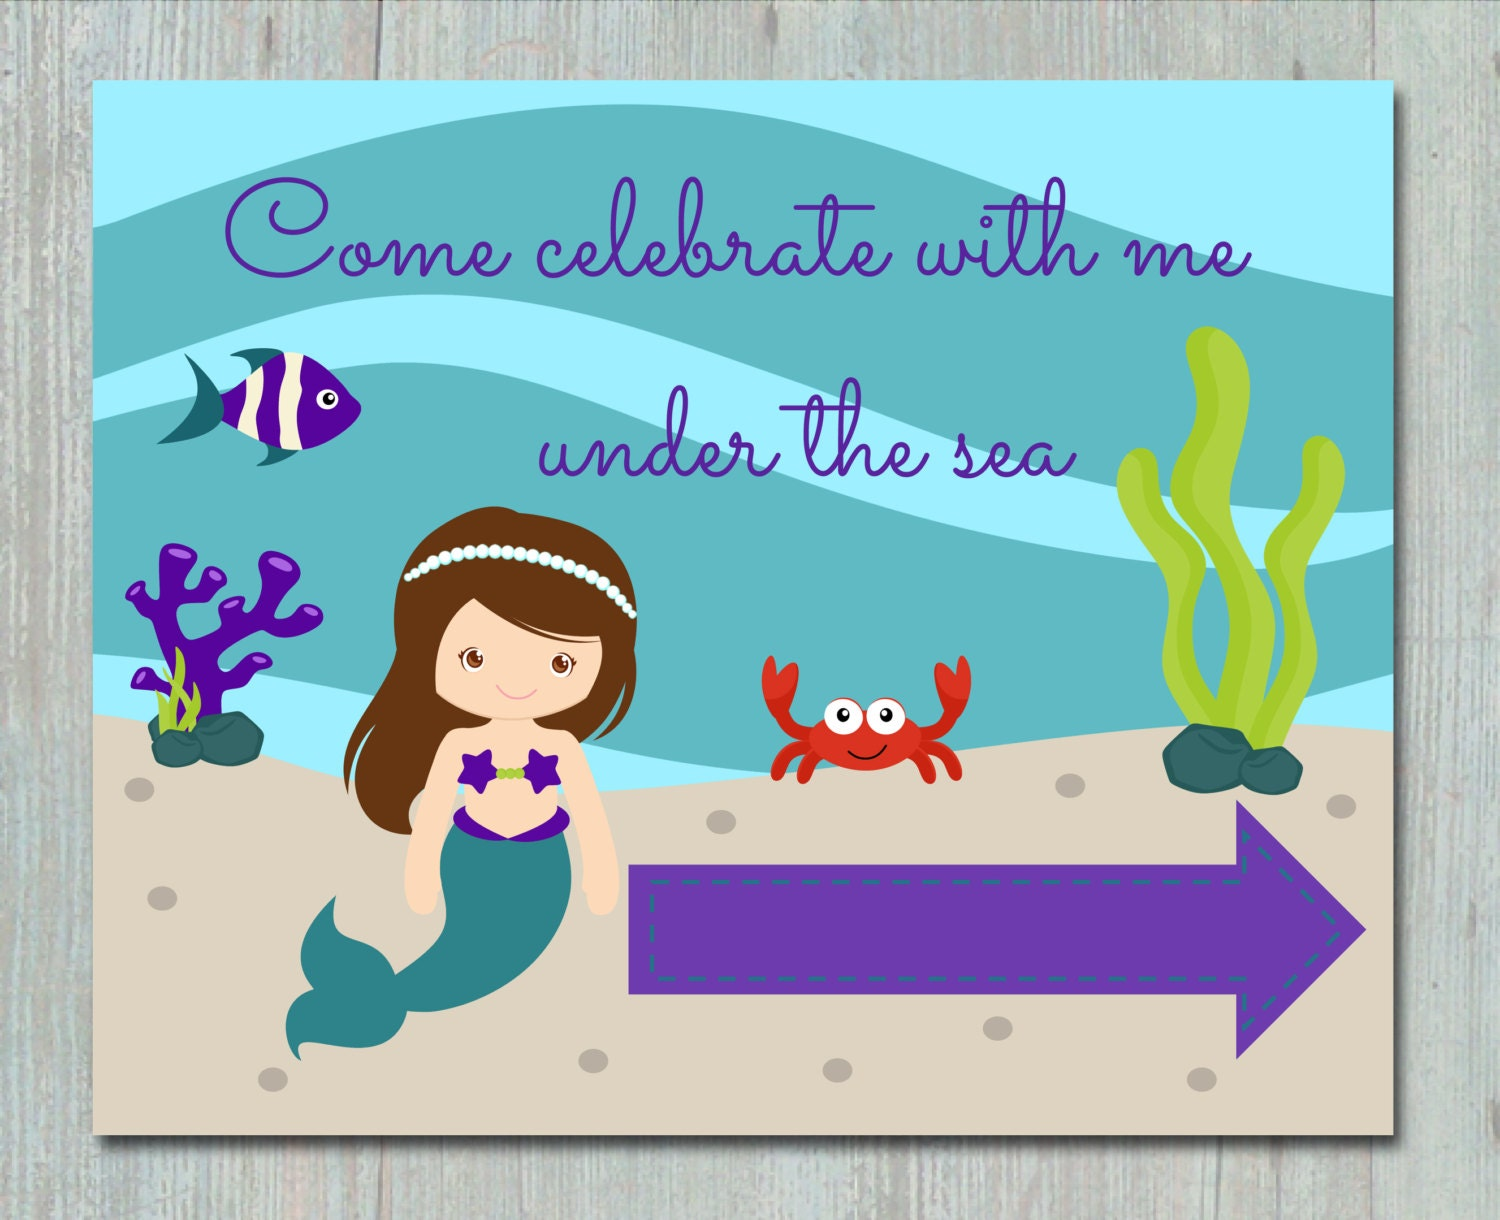 Under the sea mermaid party decor printables birthday zoom request a custom order kristyandbryce Image collections